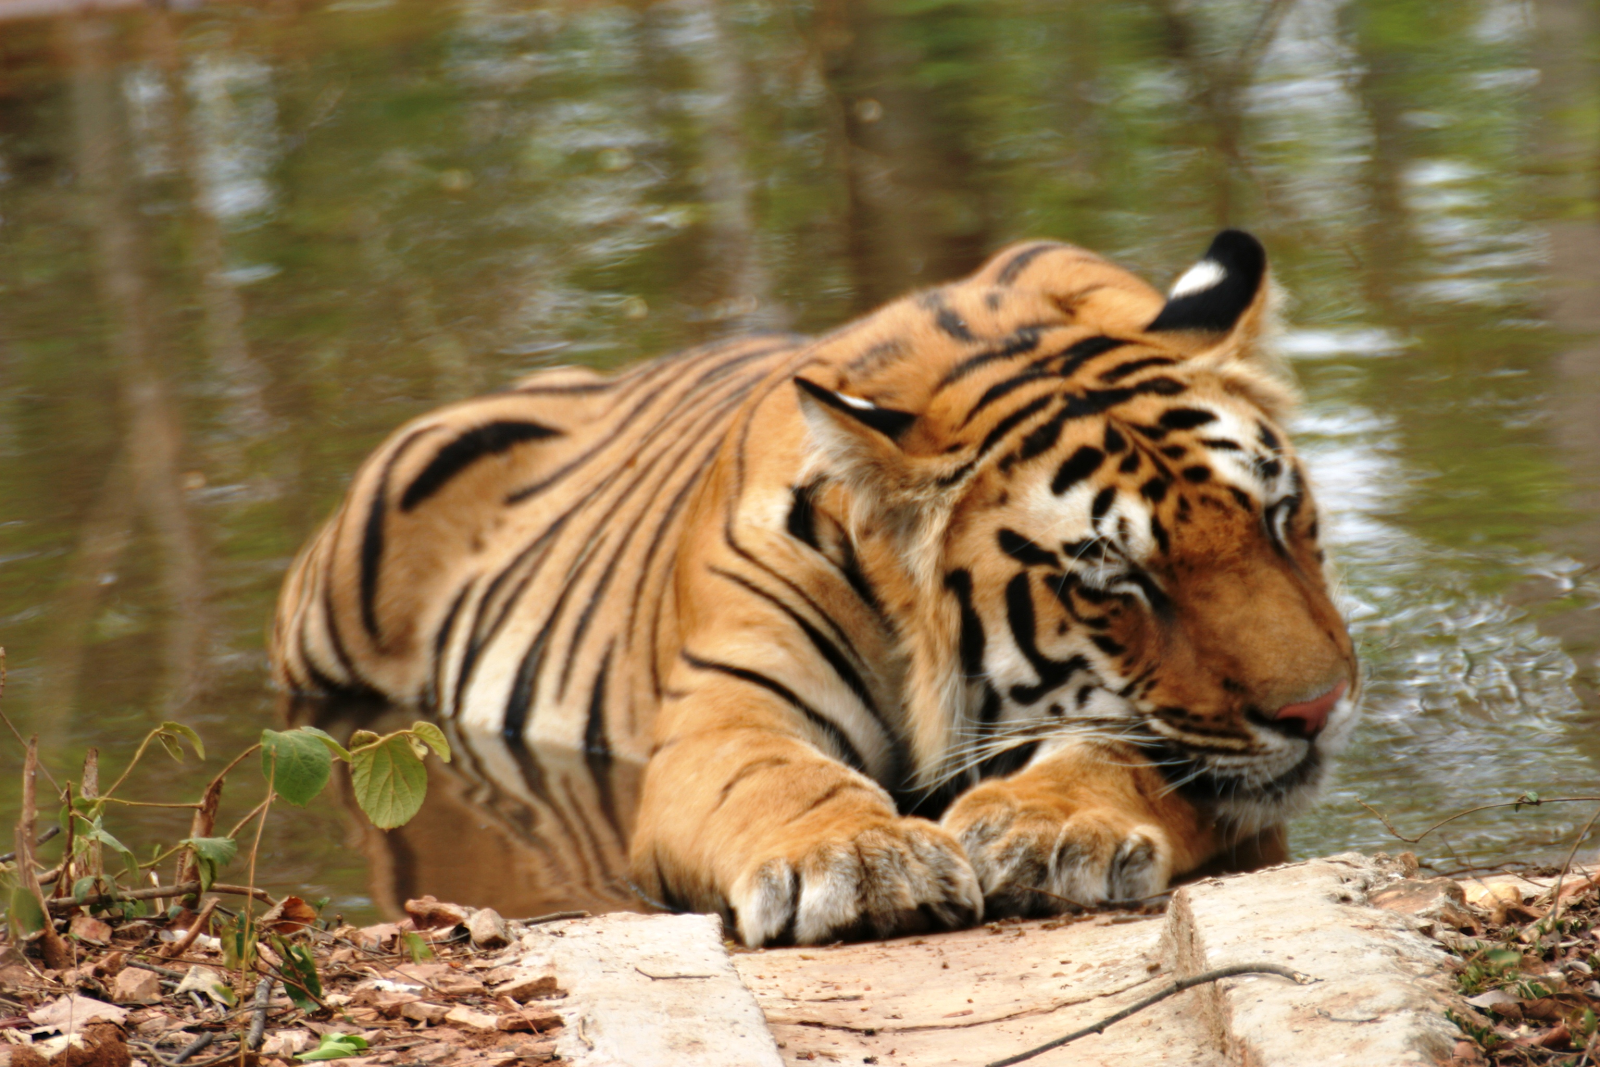 zoos-in-india-on-high-alert-as-a-tiger-found-covid-19-positive-in-new-york-summary